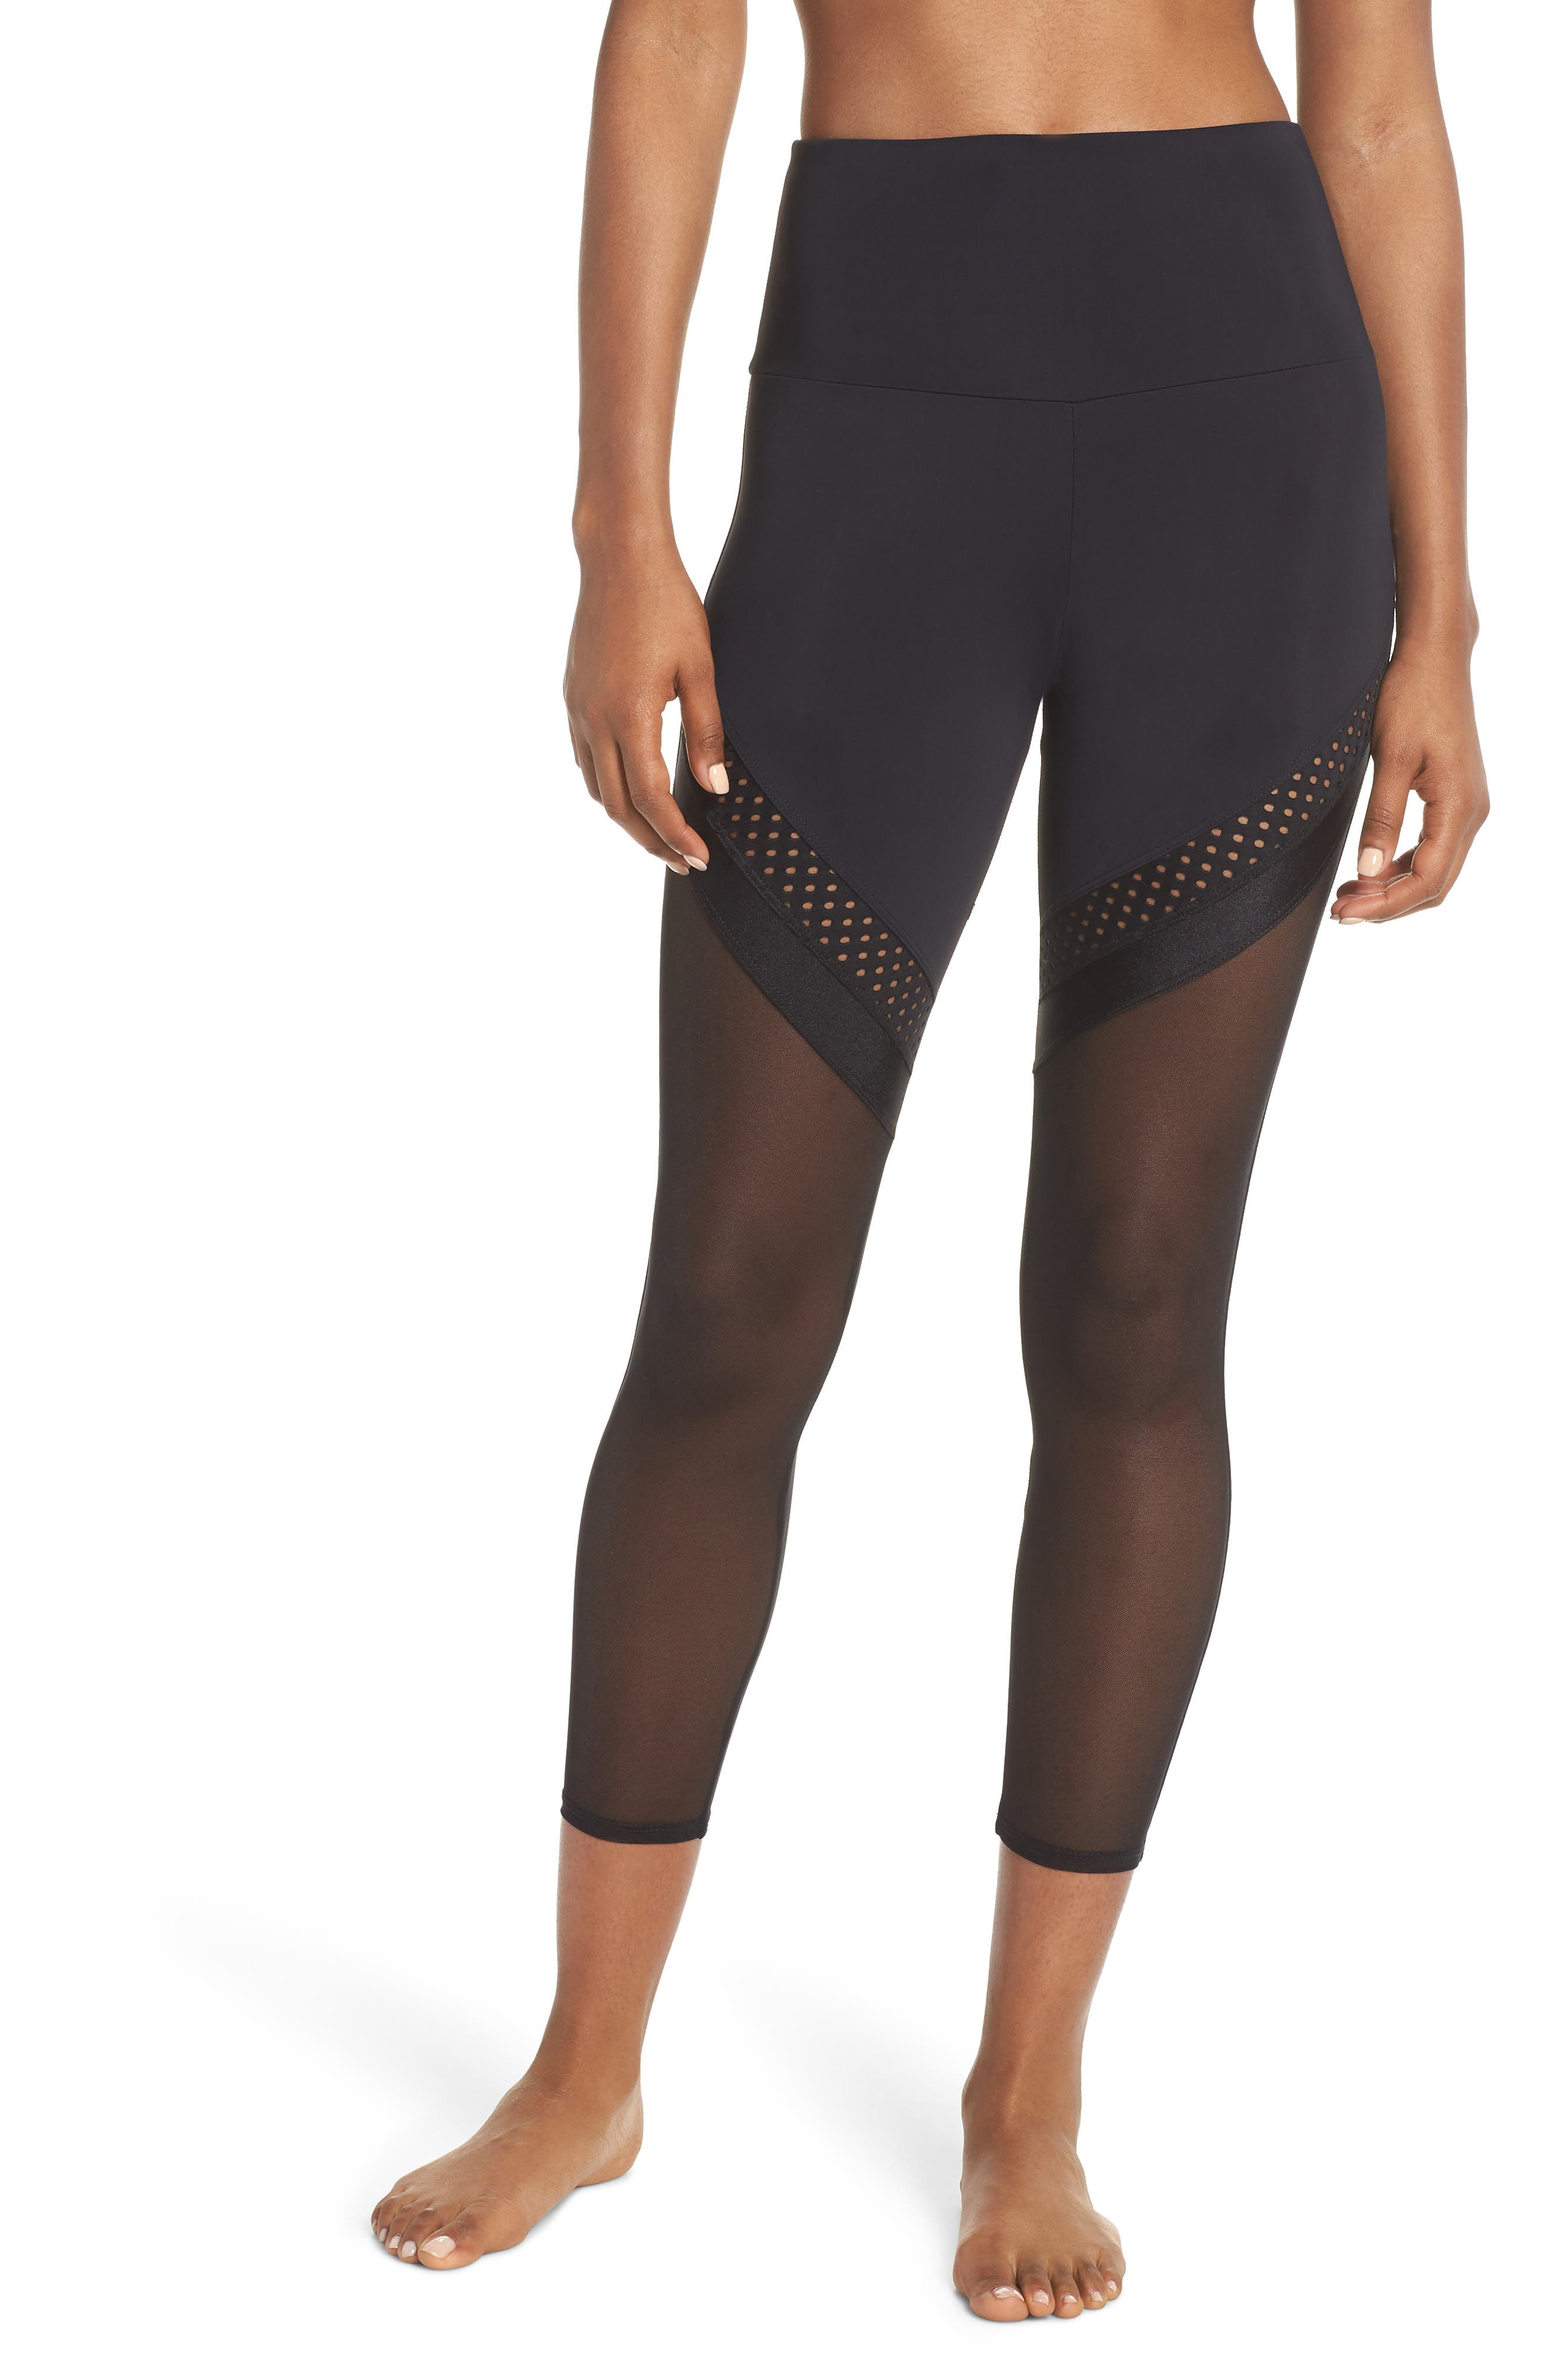 Chrome Leggings,                         Main,                         color, Black